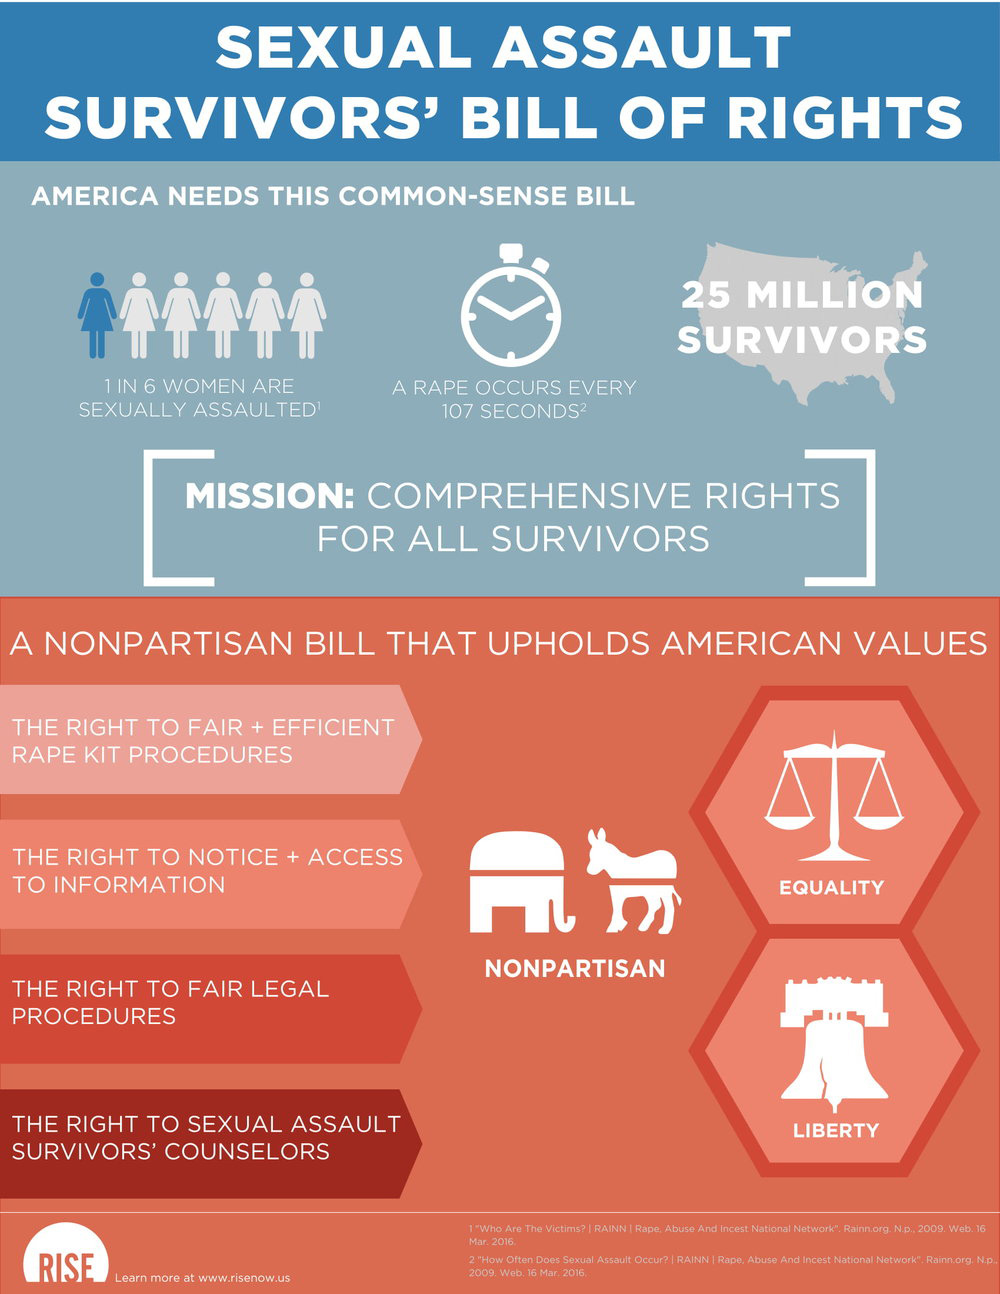 Consider, sexual assault victims bill of rights